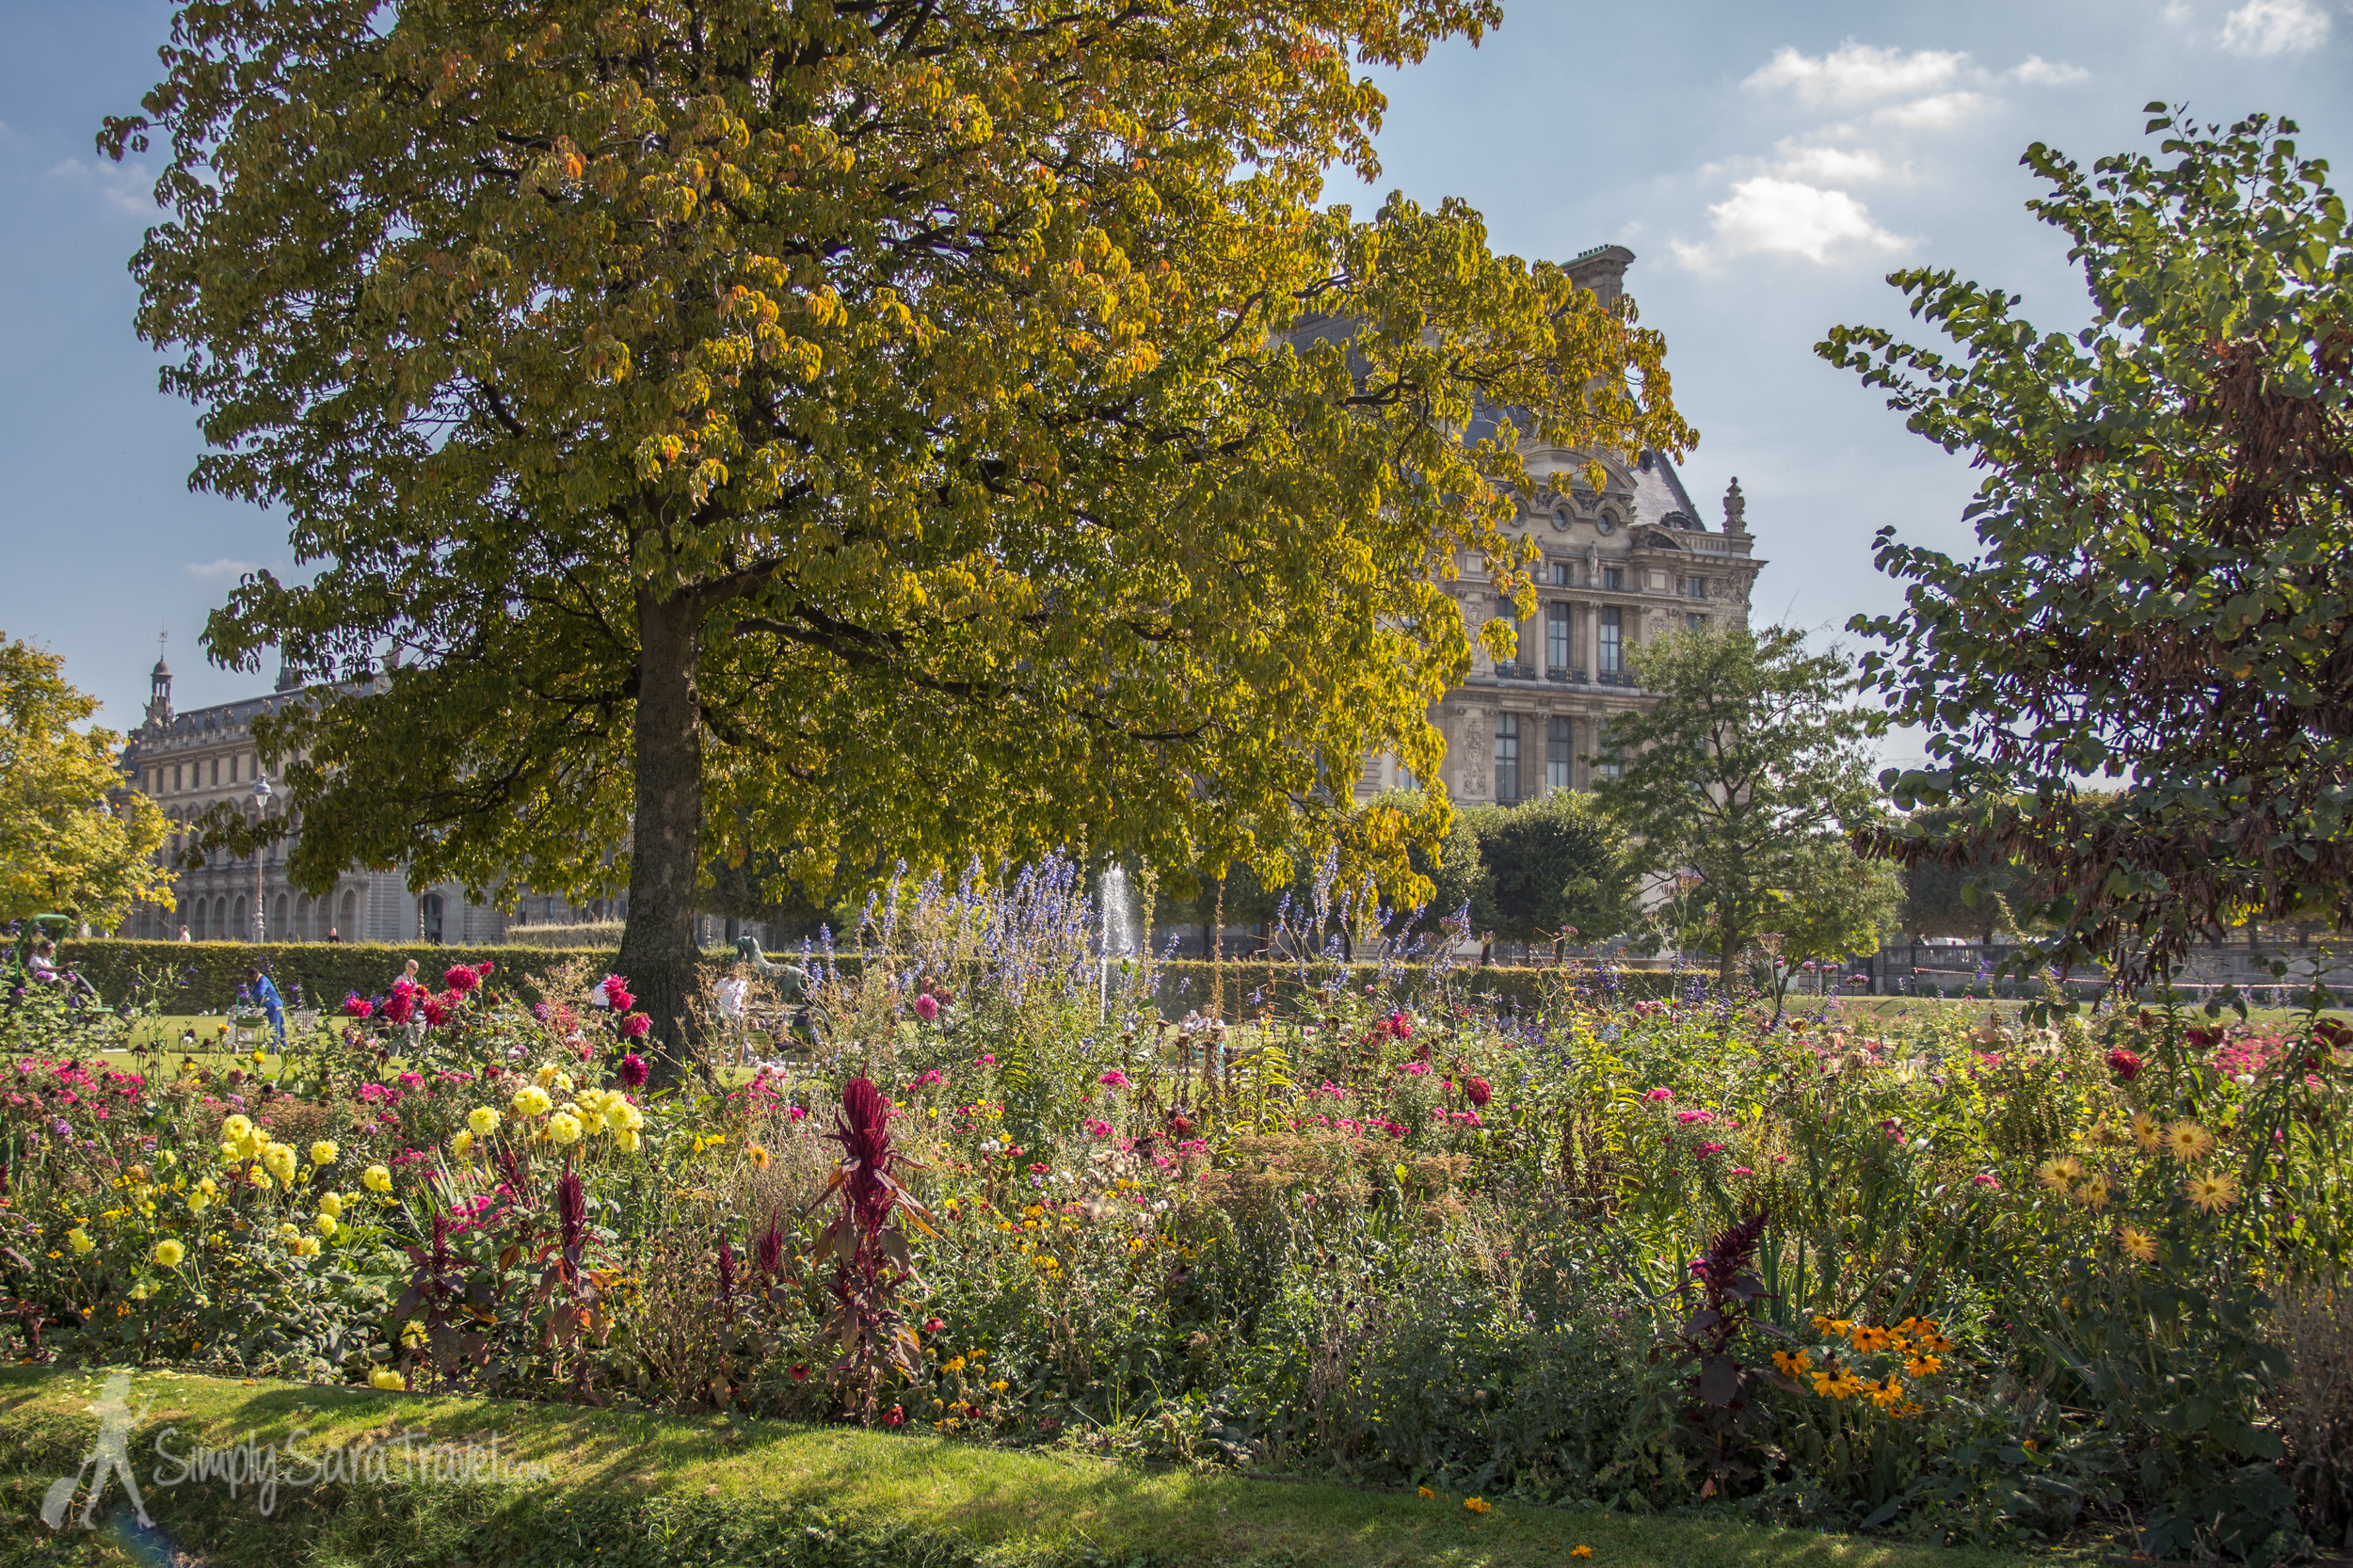 A September day in the Jardin des Tuileries